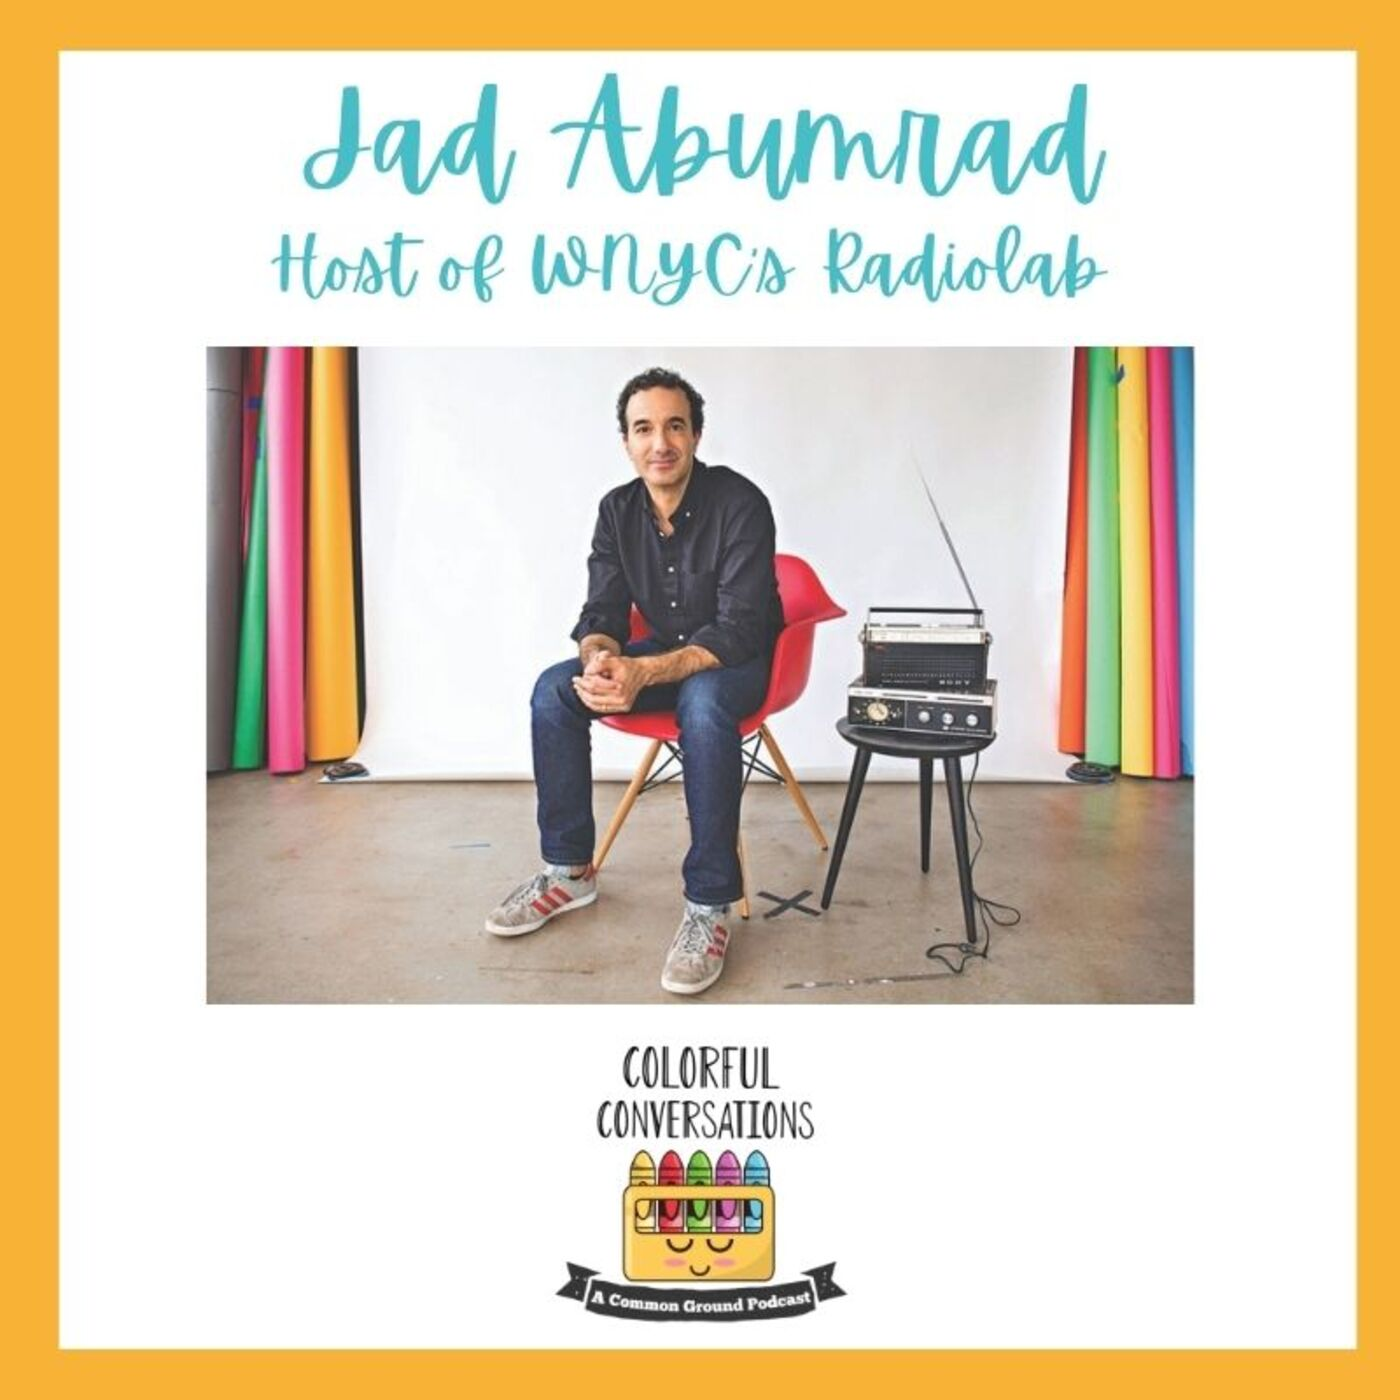 A Colorful Conversation with Jad Abumrad